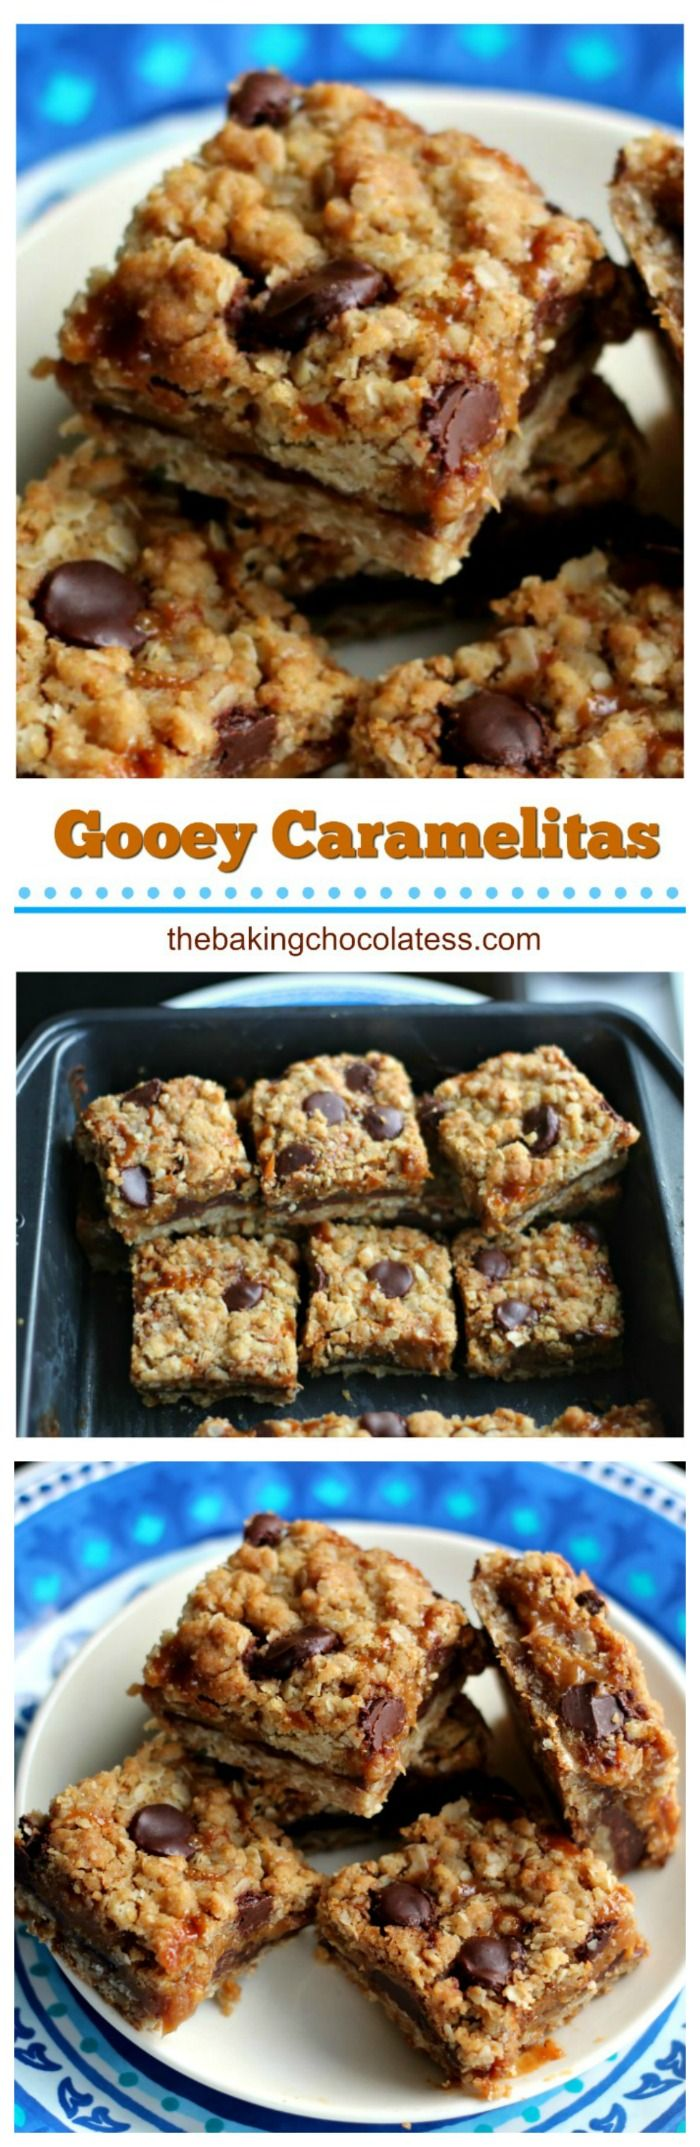 Gooey Caramelitas - Ooey, gooey deliciousness in bars loaded with chocolate, oats and caramel with an oatmeal cookie crust! via @https://www.pinterest.com/BaknChocolaTess/